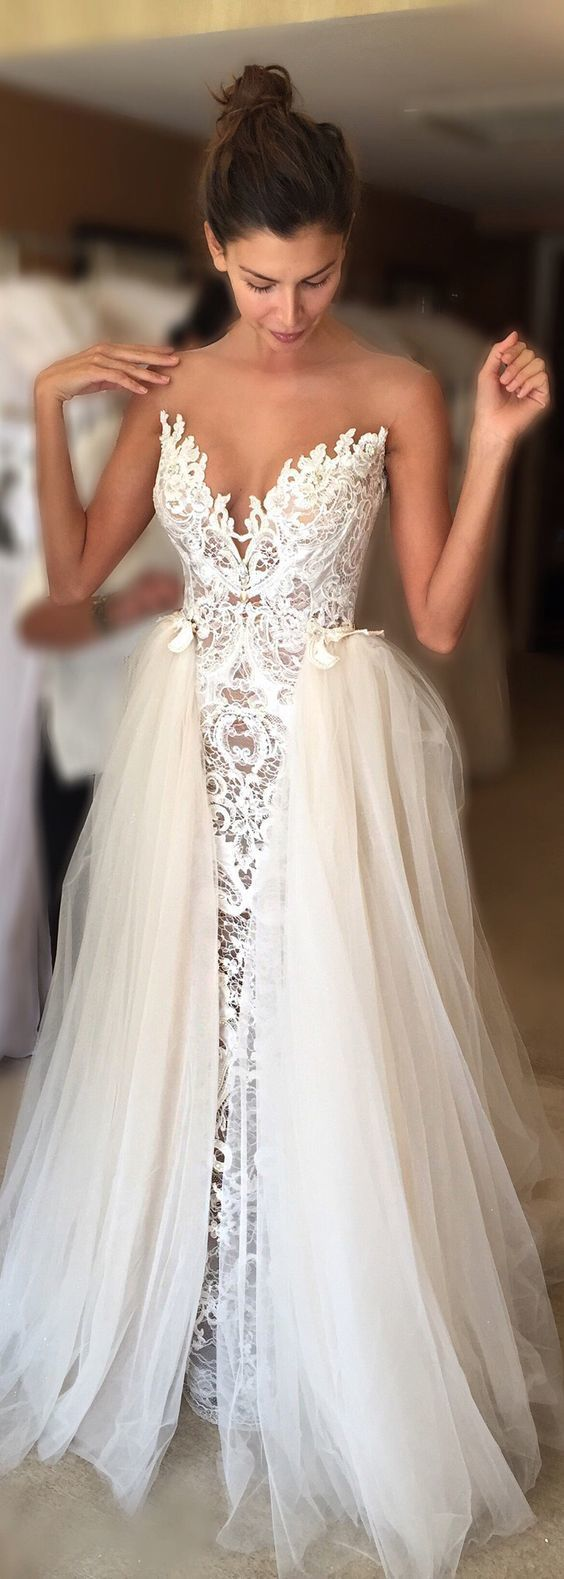 Cheap prom dresses 2017,Elegant Wedding Dress Bride by lass on Zibbet